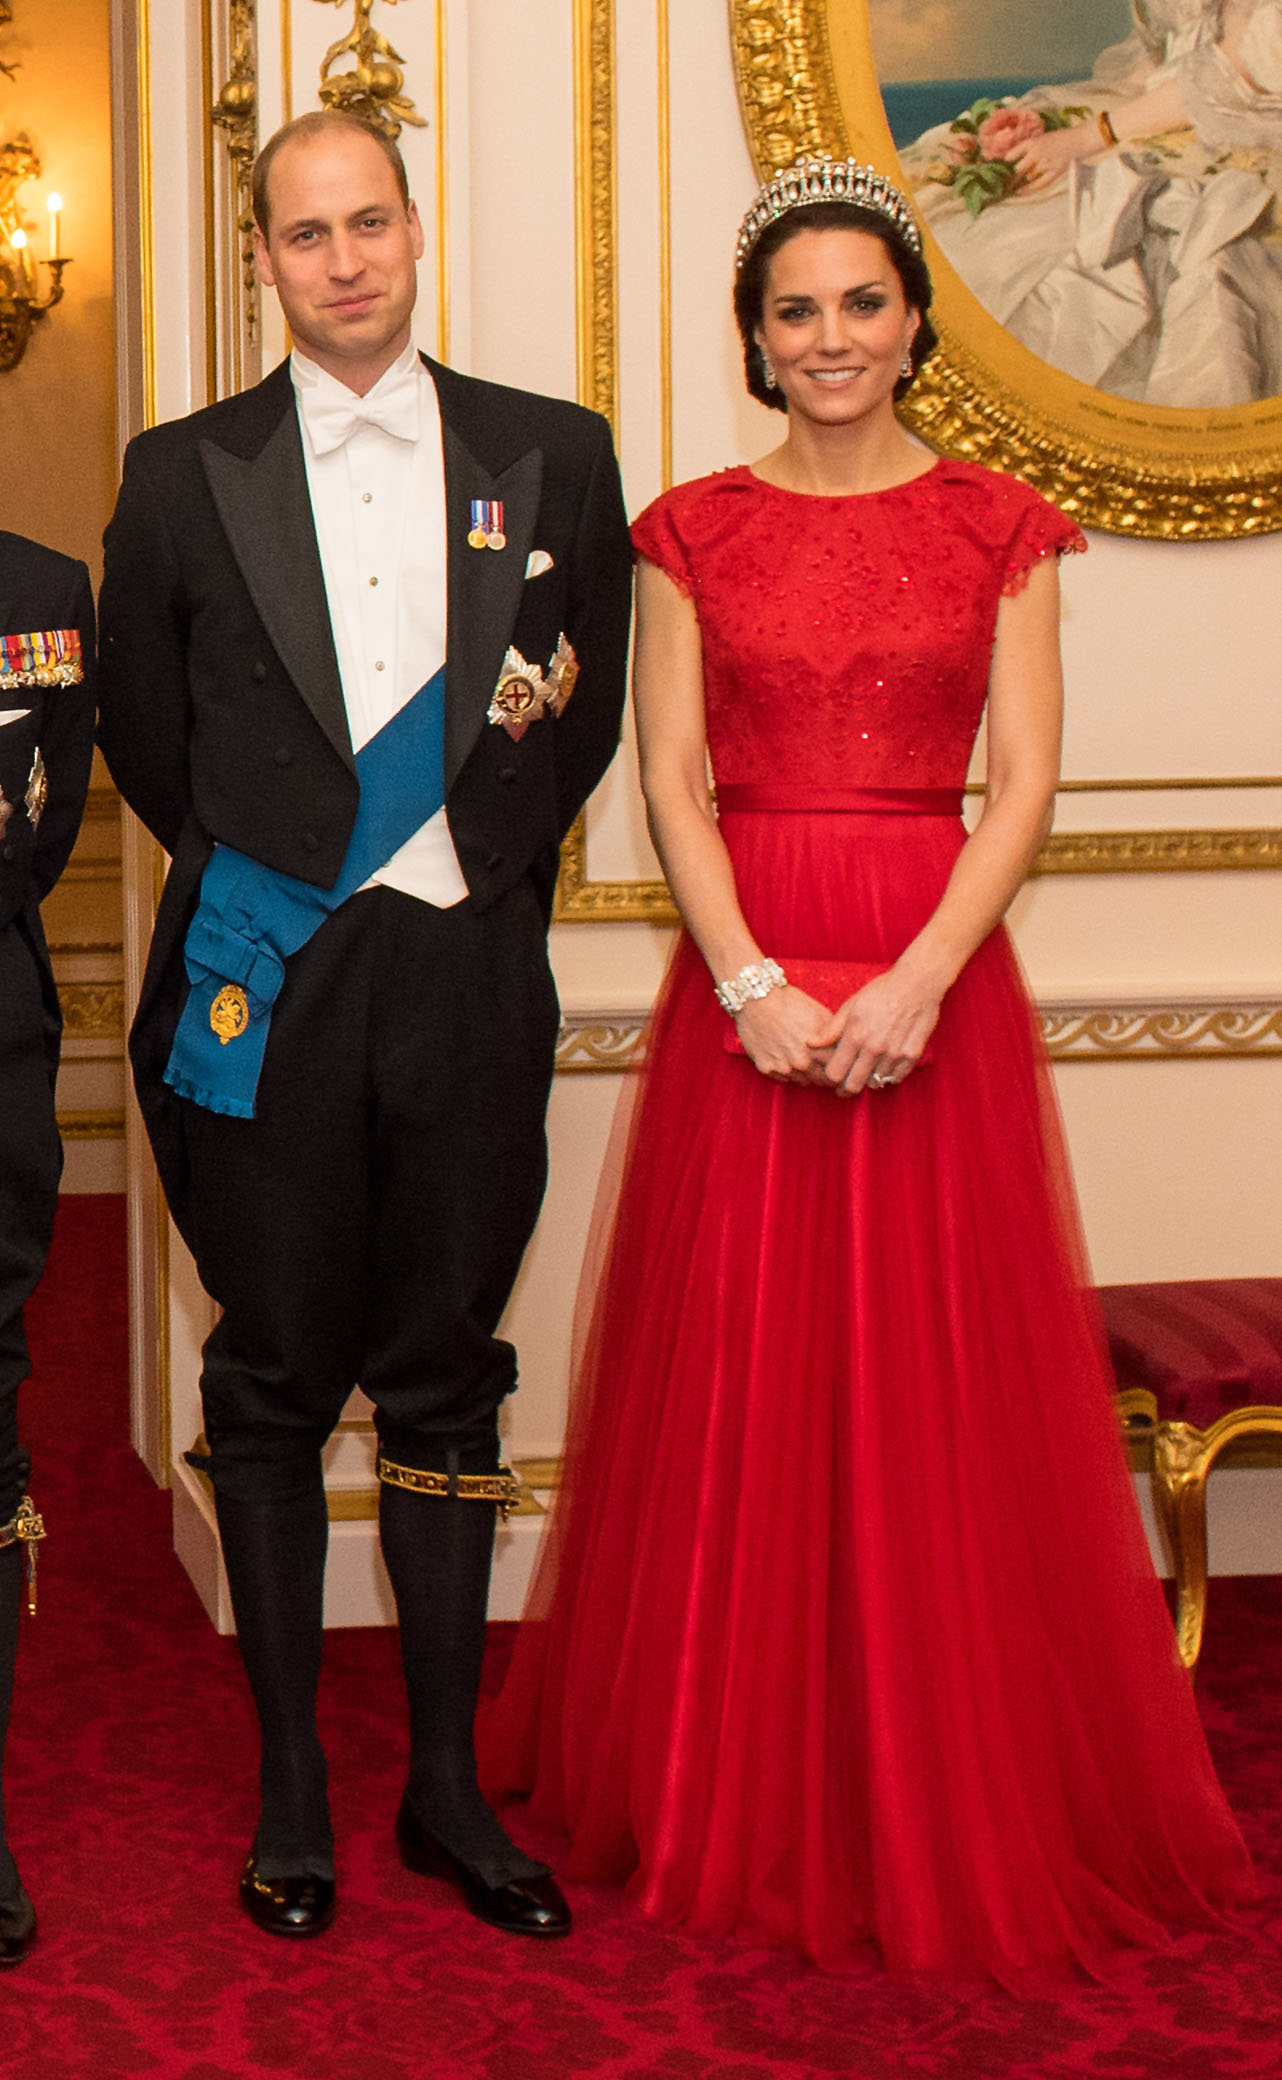 The Duke and Duchess of Cambridge arrive for the annual evening reception for members of the Diplomatic Corps at Buckingham Palace, London, on Dec. 8, 2016.